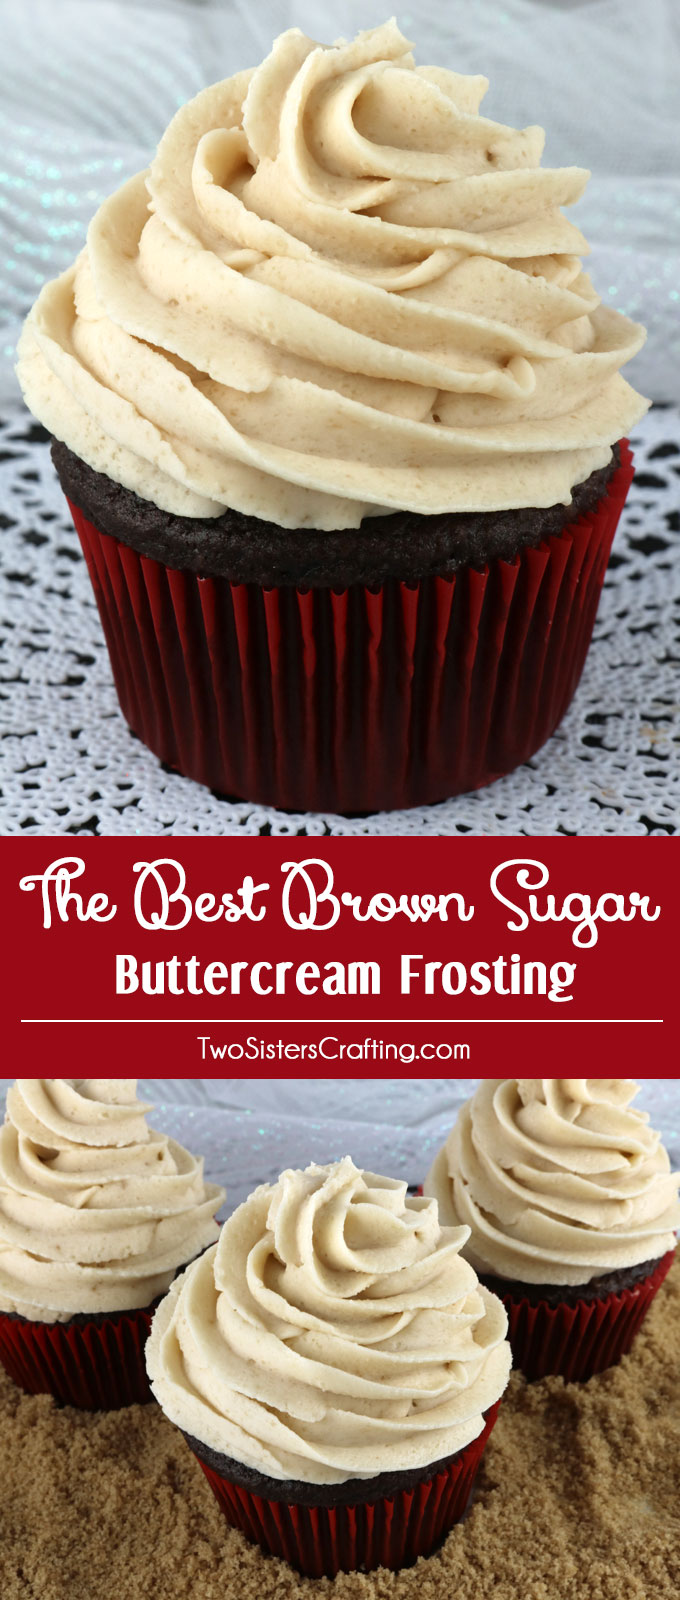 The Best Brown Sugar Buttercream Frosting  Two Sisters